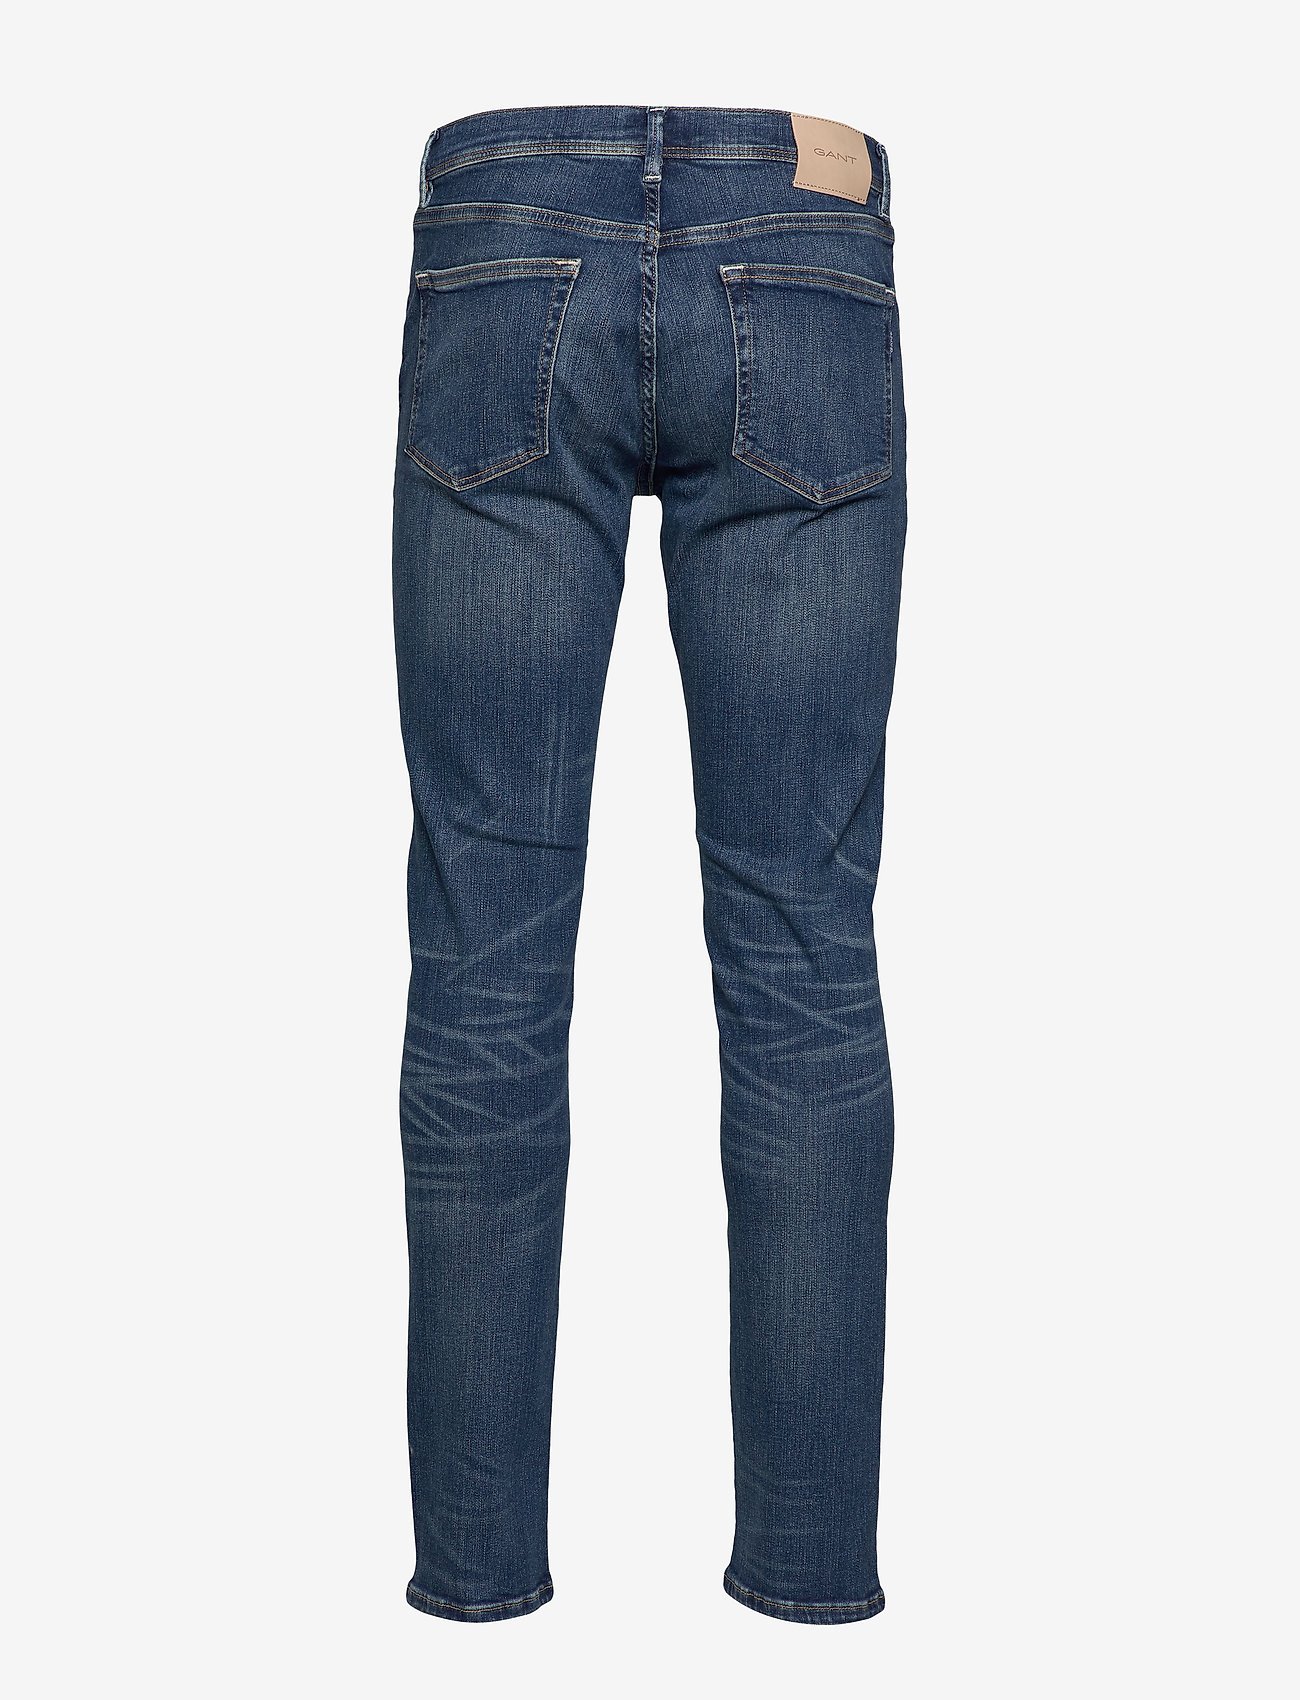 GANT - D1. SLIM ACTIVE-RECOVER JEANS - slim jeans - dark blue broken in - 1